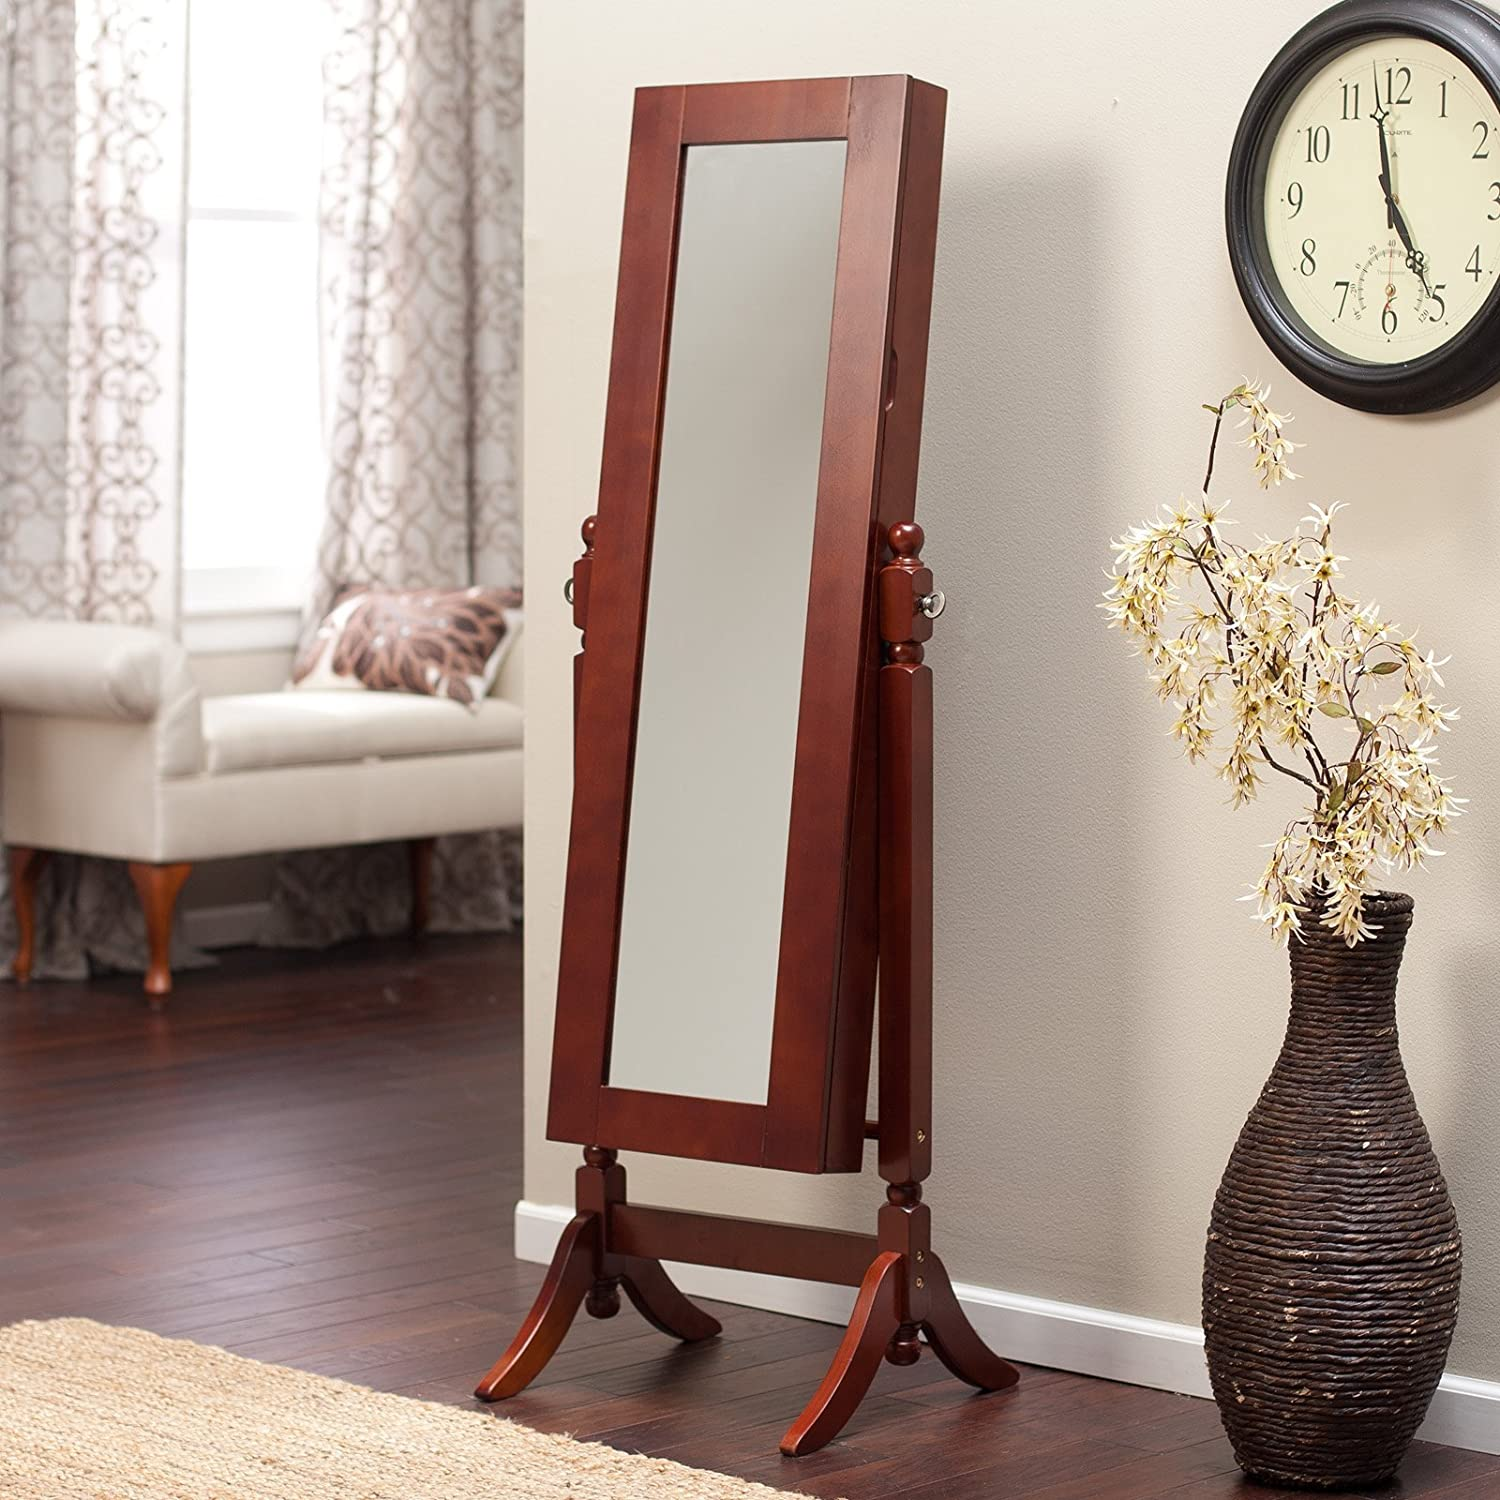 cheval mirror jewelry armoire. Black Bedroom Furniture Sets. Home Design Ideas